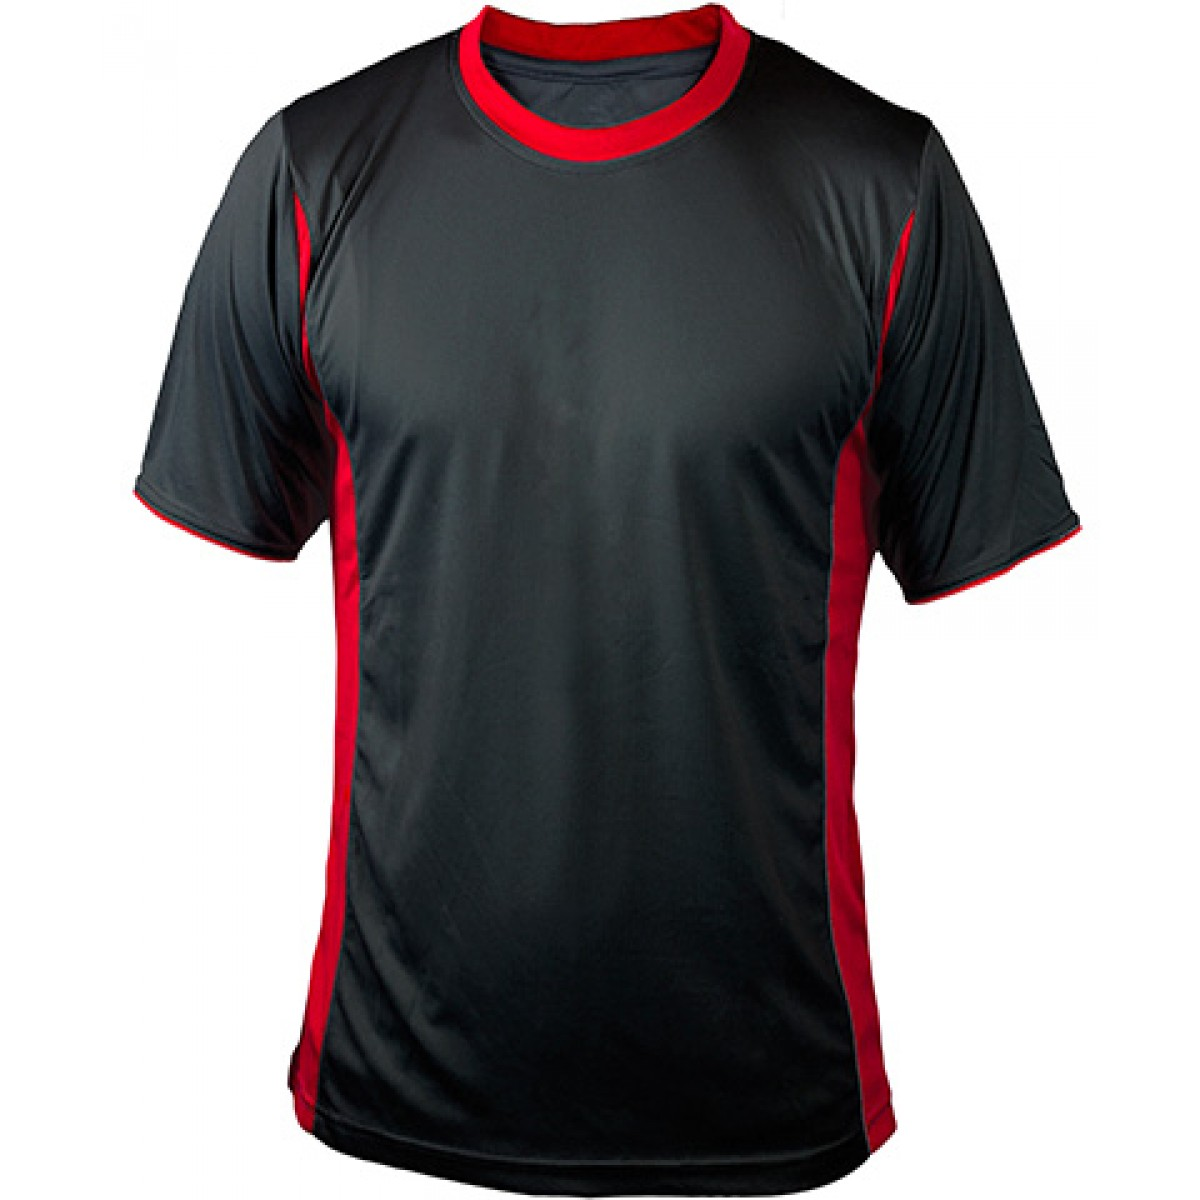 Black Short Sleeves Performance With Red Side Insert